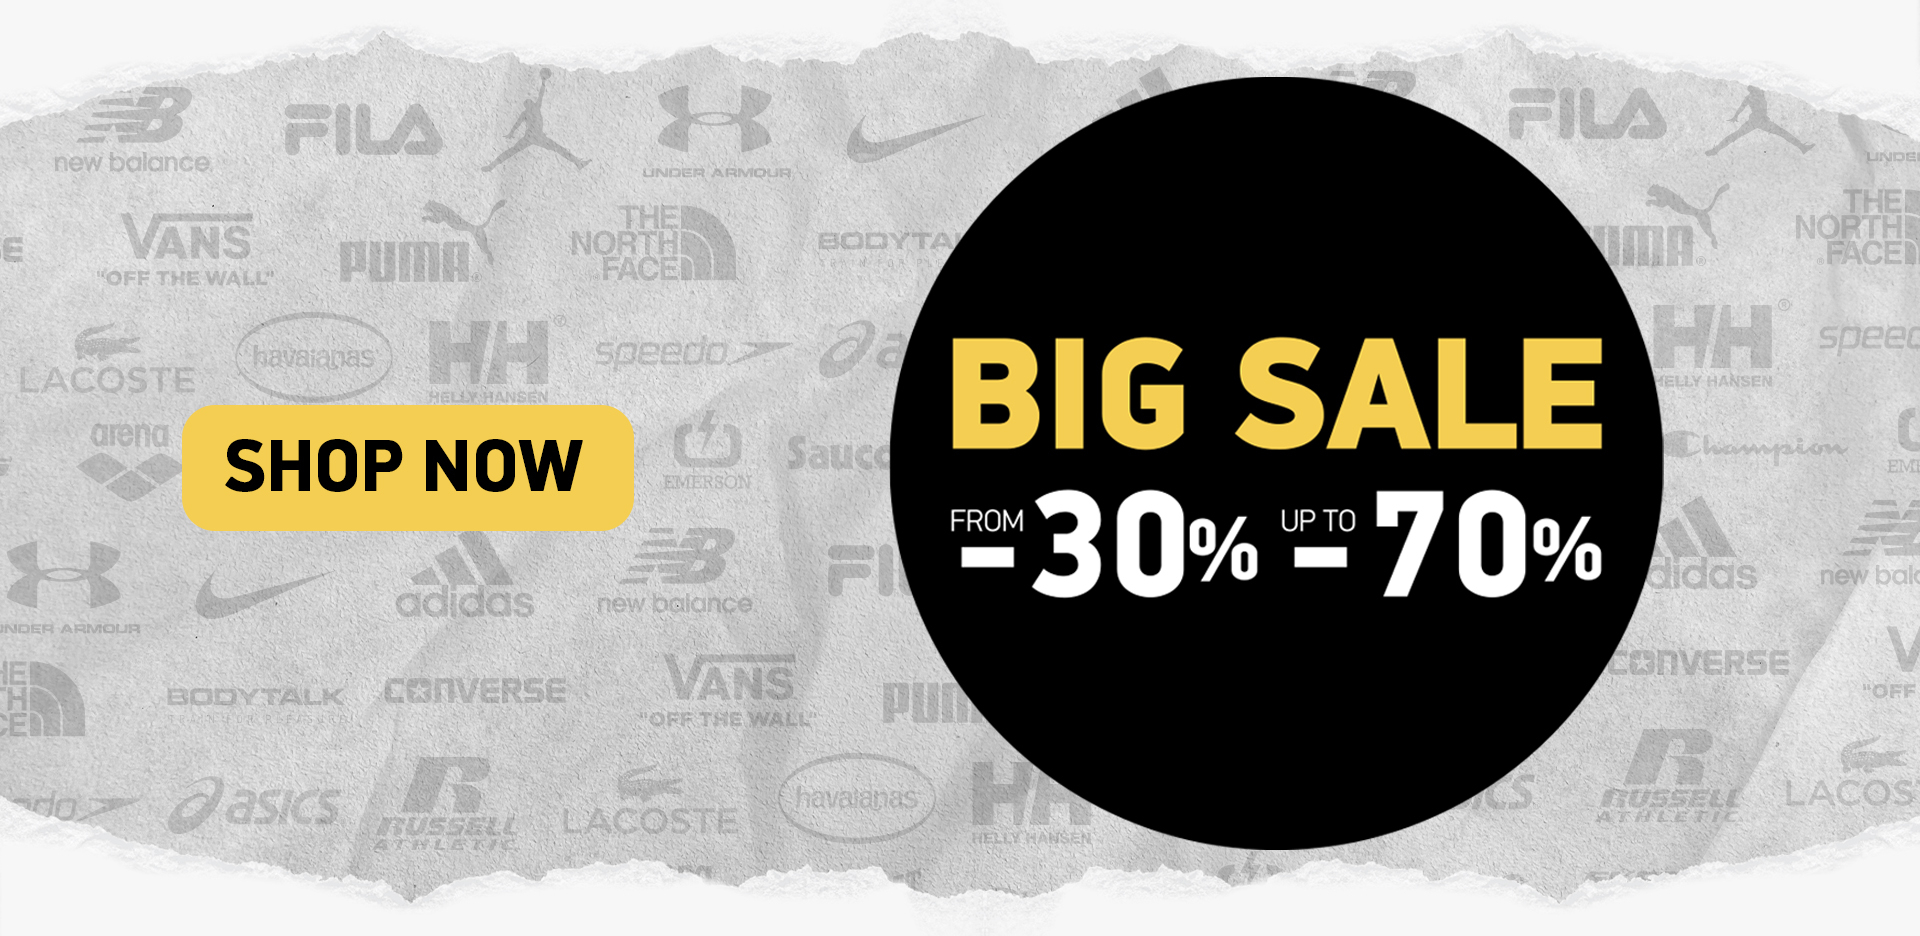 BIG Sale From -30% Up to -70%